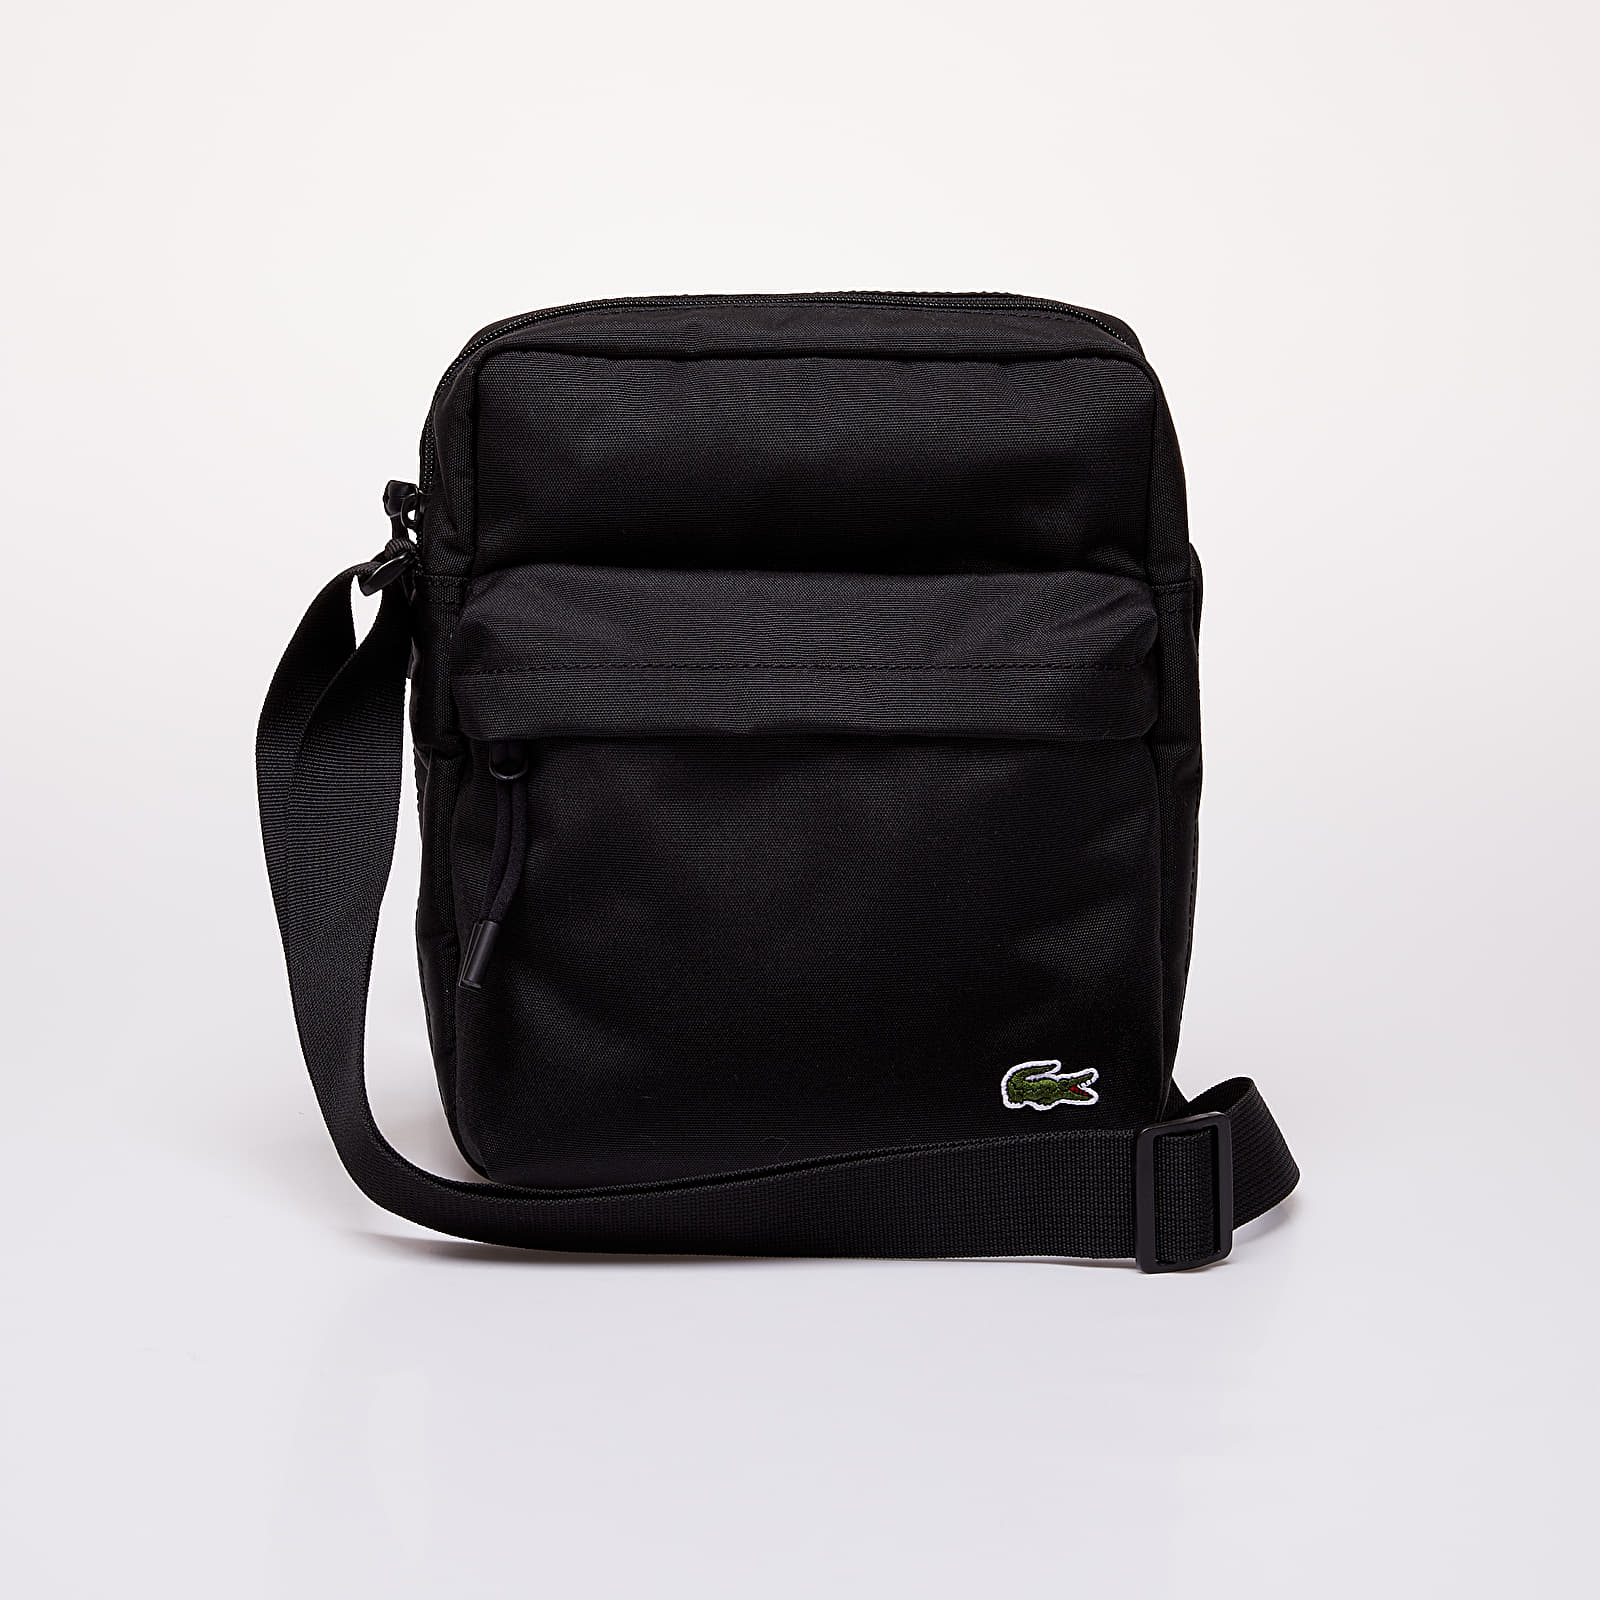 Bags LACOSTE Crossover Bag Black